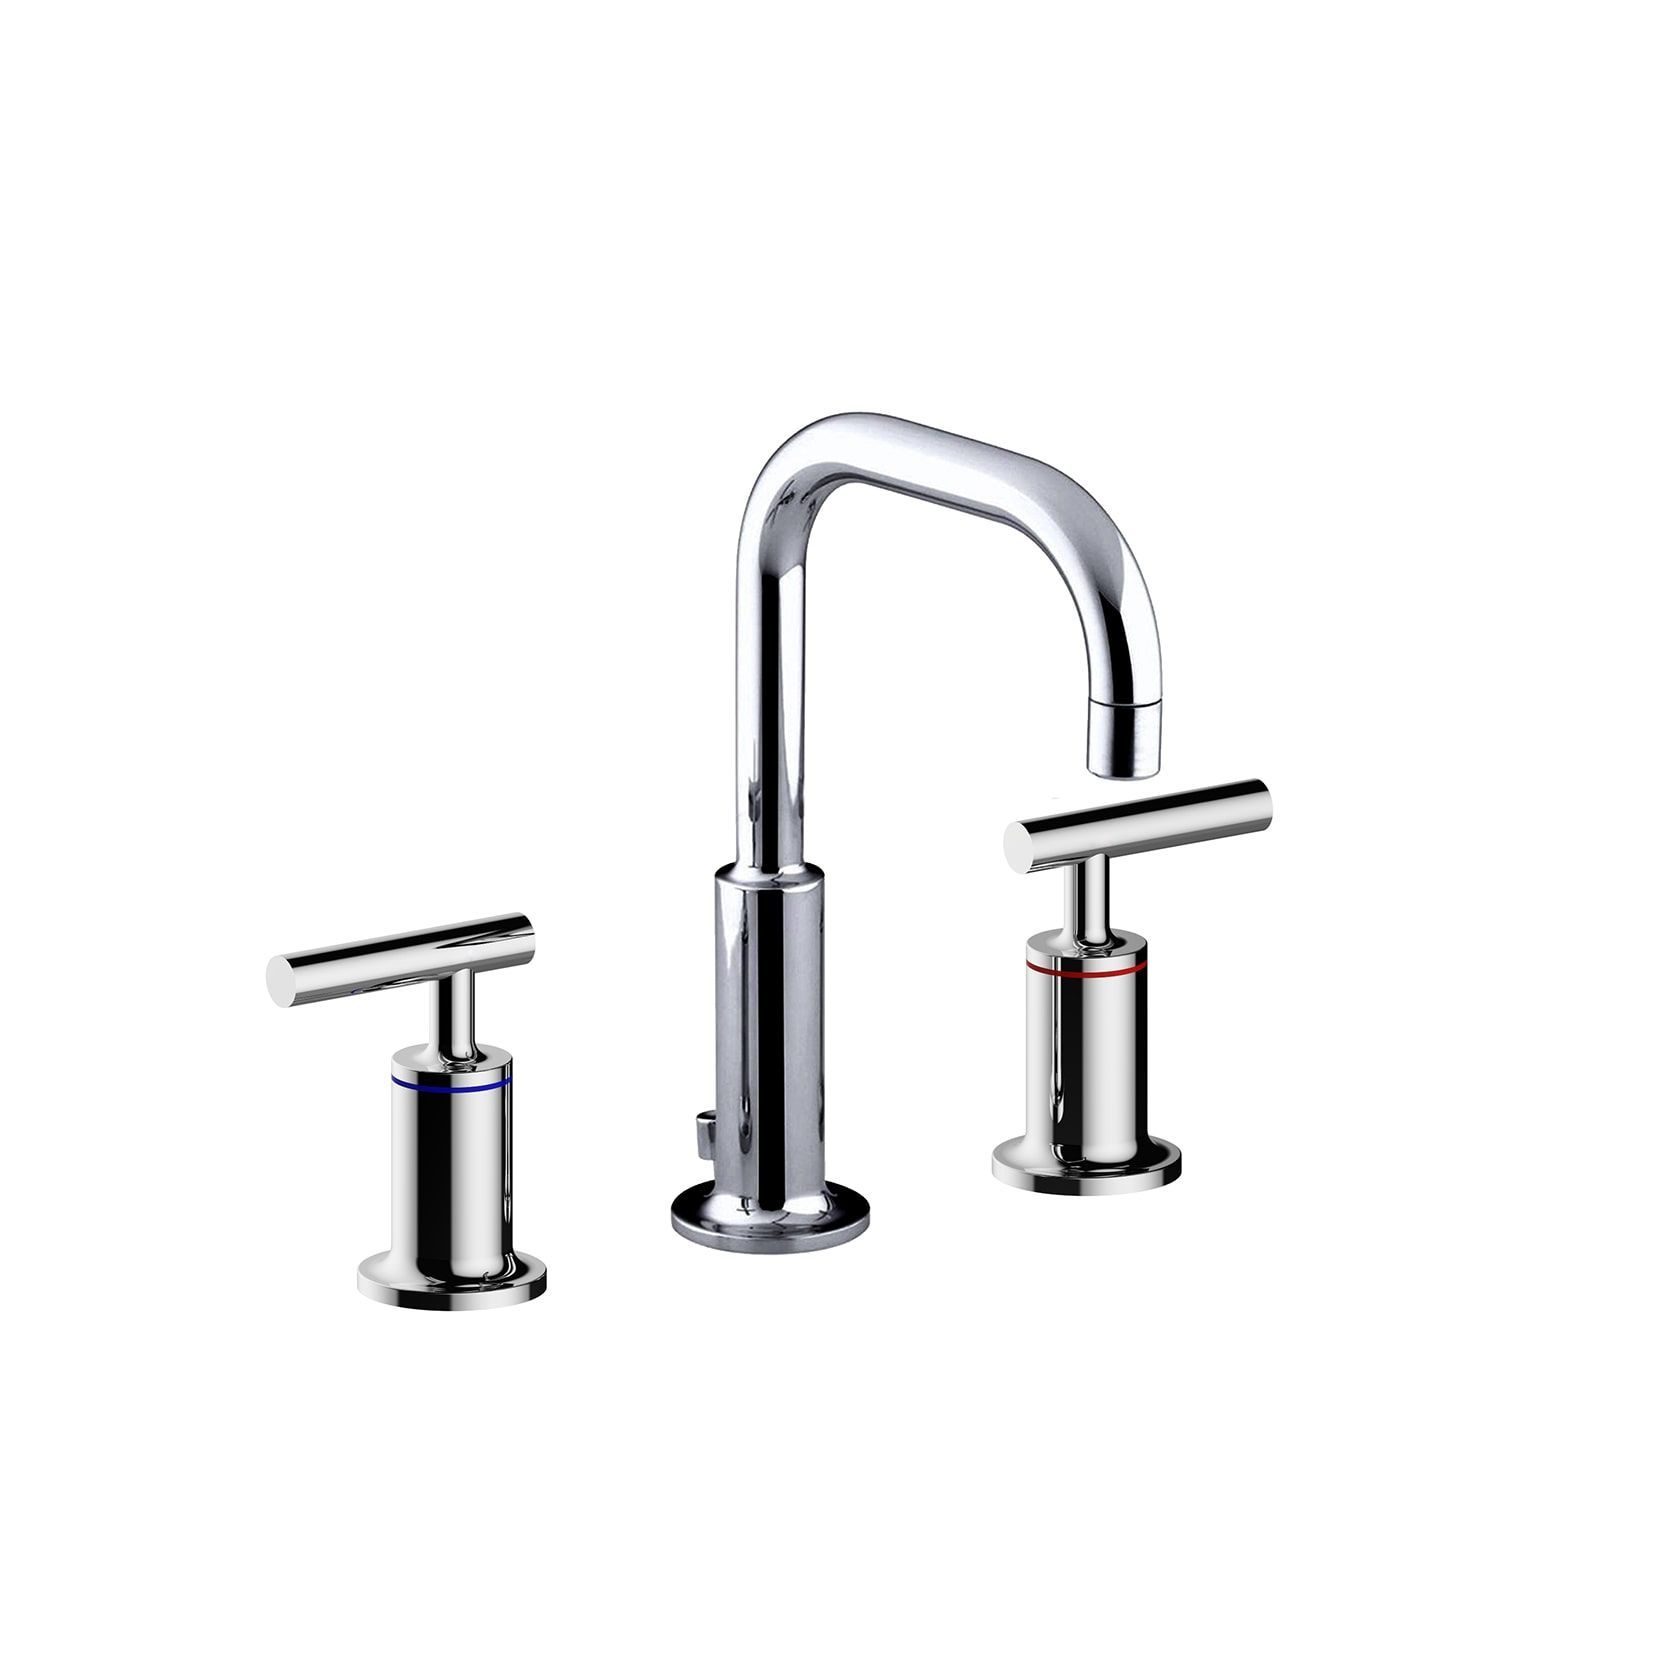 Y Decor Luxurious Double Handle Basin Faucet in Brushed Nickel ...